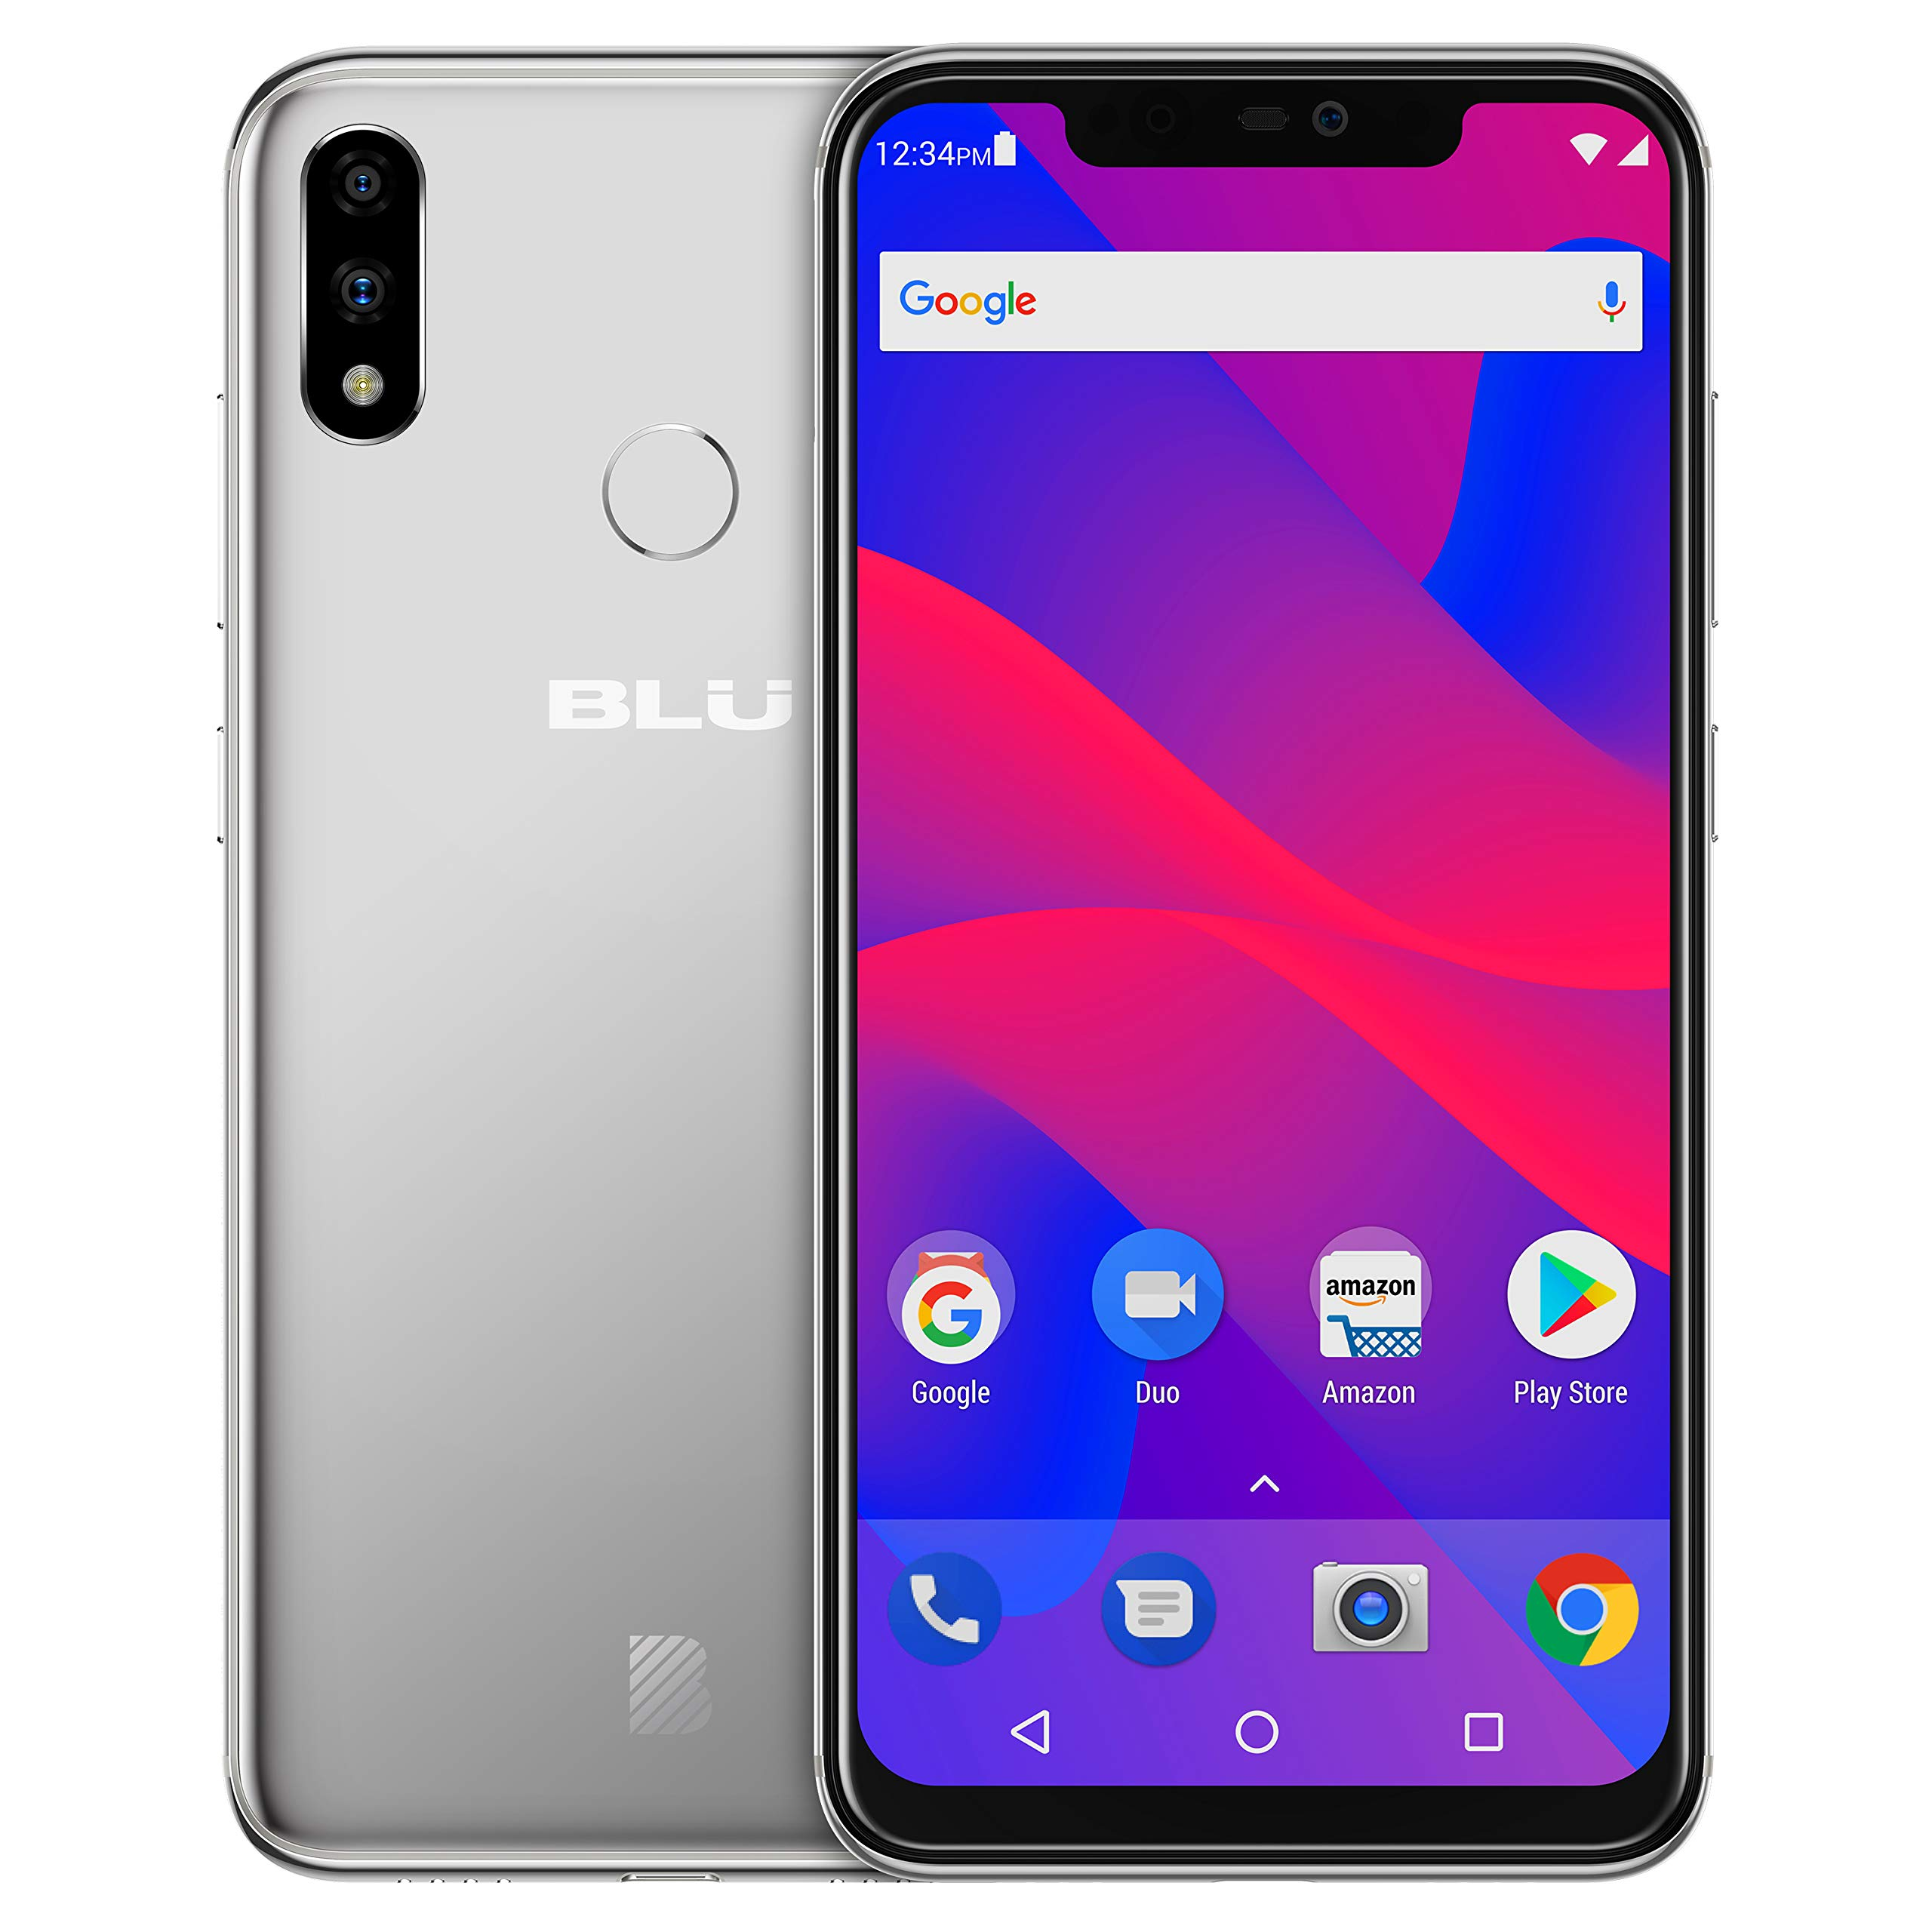 BLU VIVO XI+ - 6.2'' Full HD+ Smartphone GSM Unlocked and Verizon Compatible, 128GB+6GB RAM, AI Dual Cameras -Silver by BLU